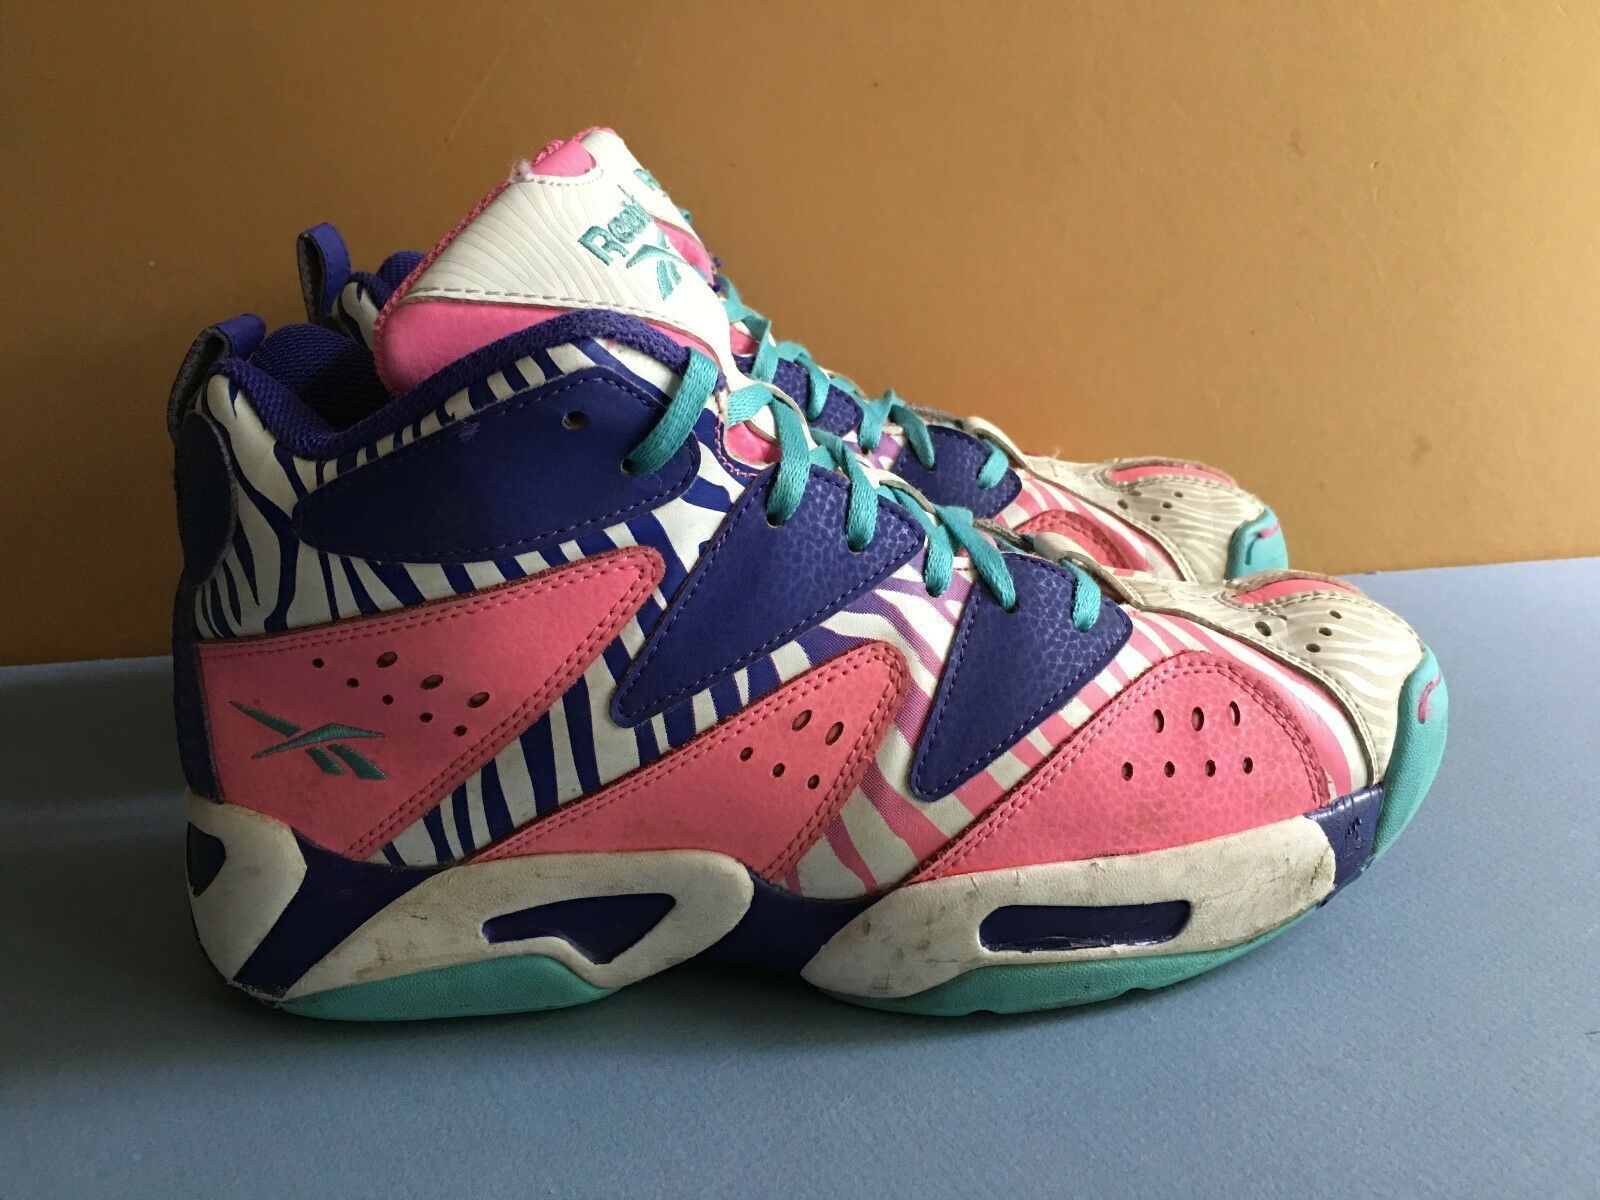 REEBOK KAMIKAZE  Zebra Craze Women's 7 Sneakers Kicks Shoes RARE